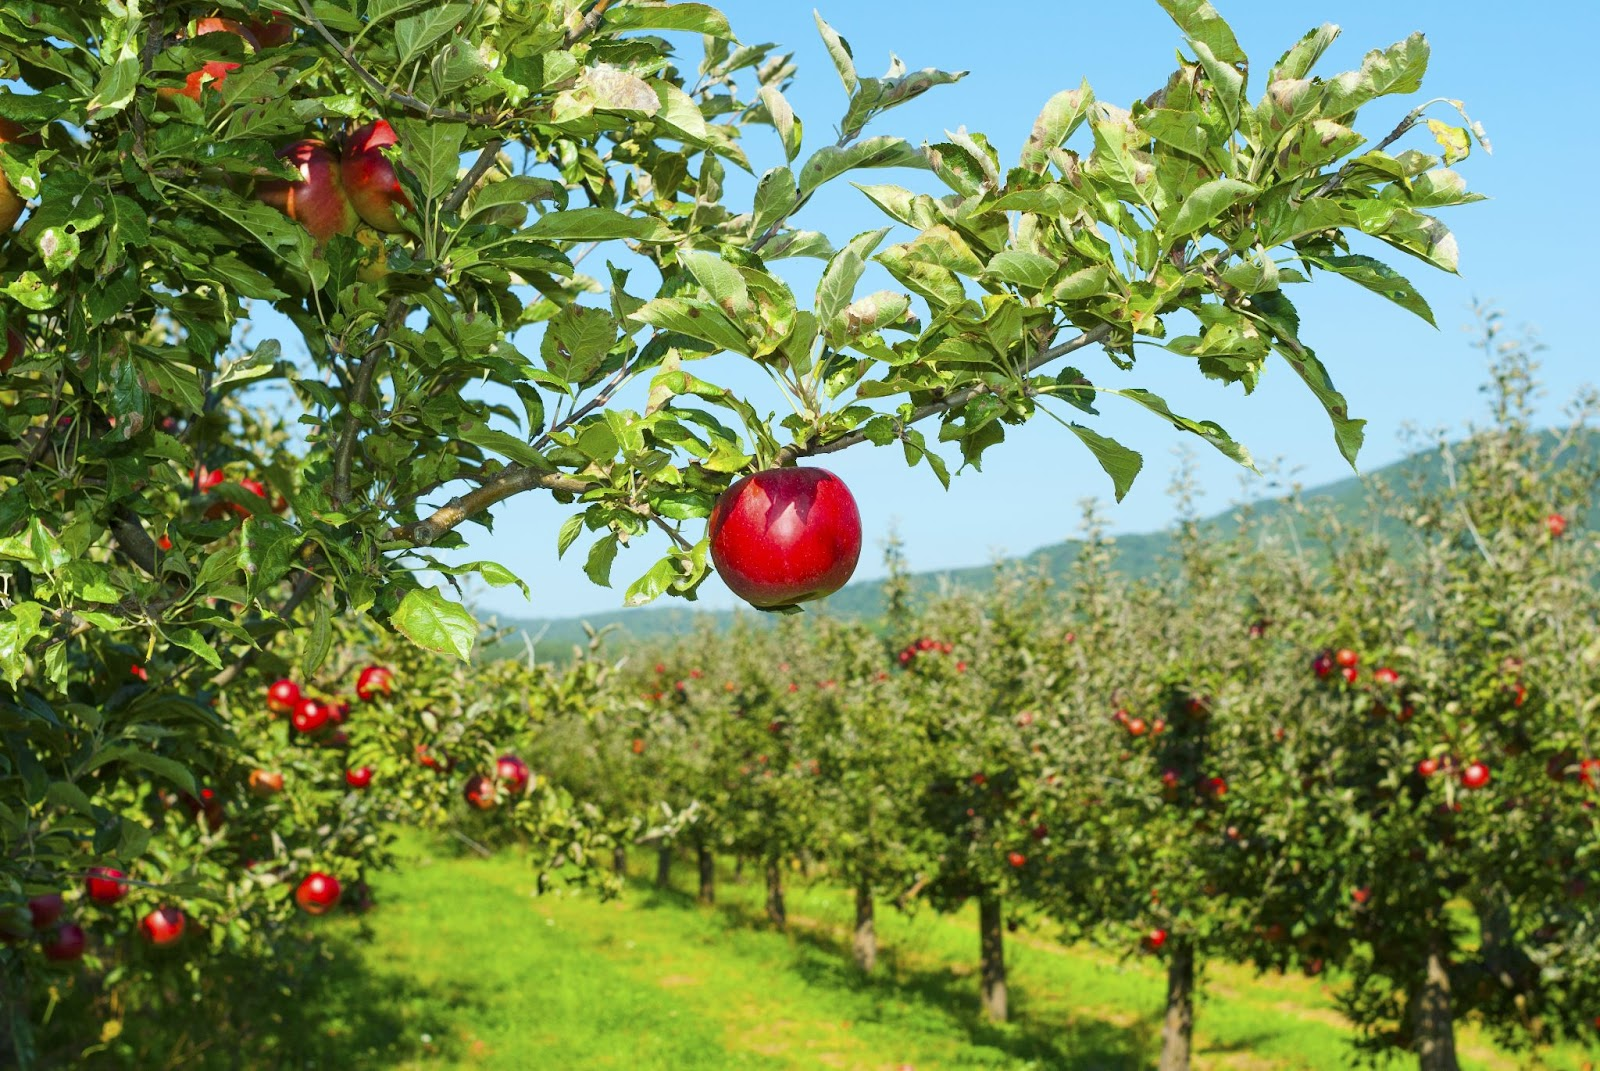 Dividend growth investing: Rows of apple trees in an orchard